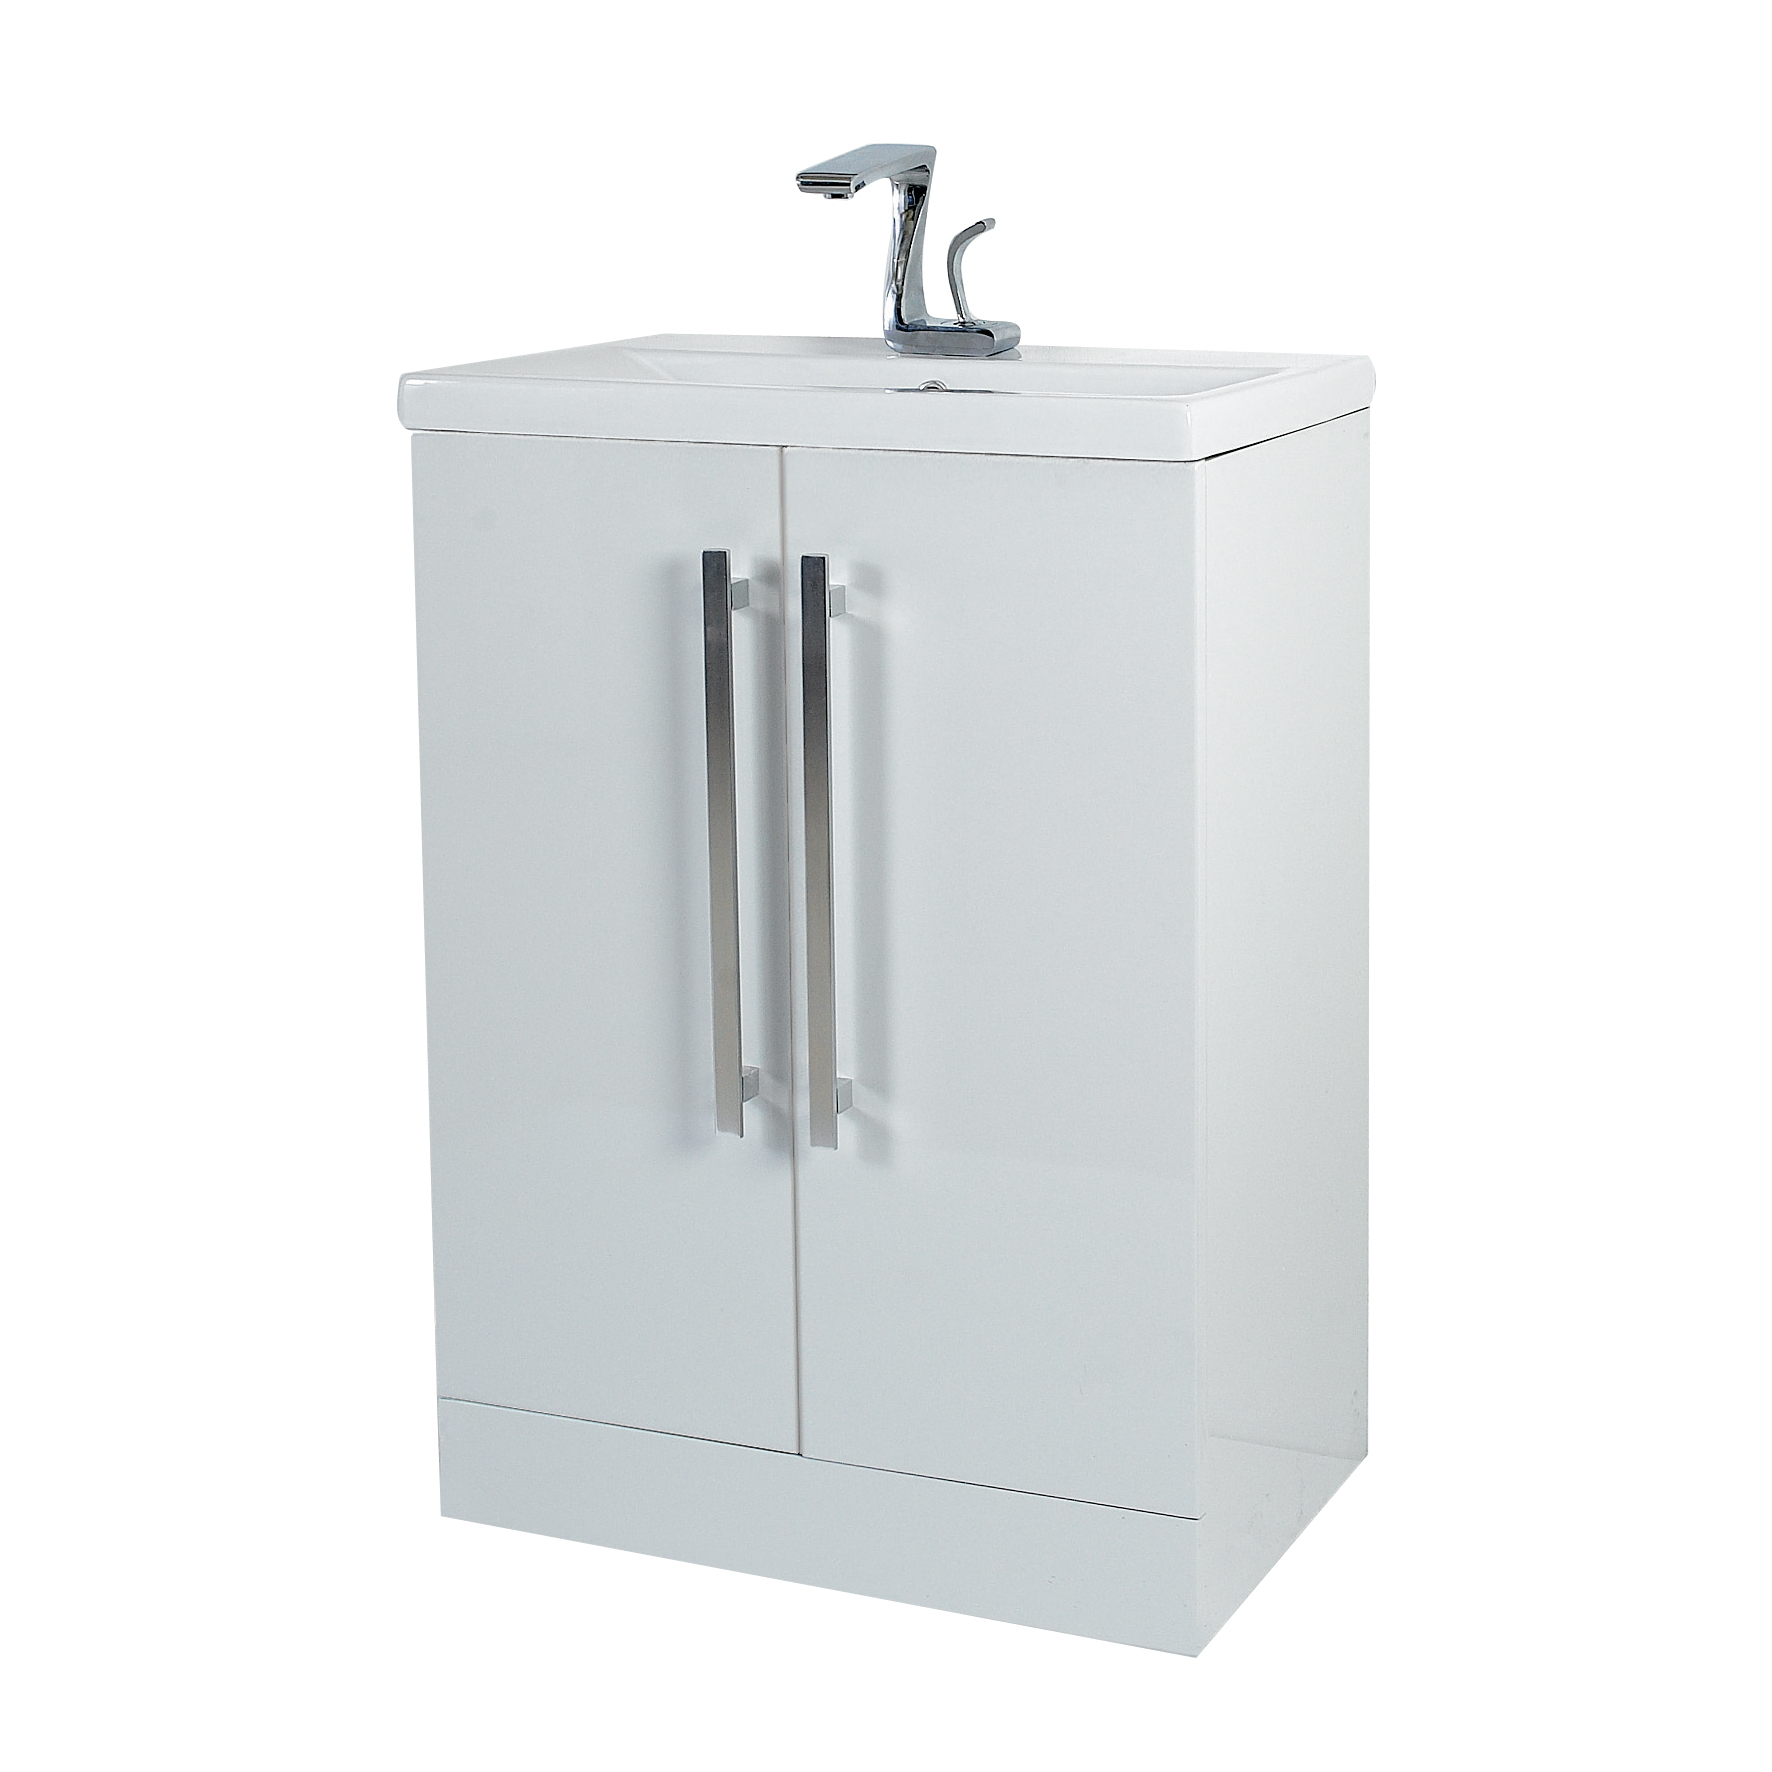 Floor standing bathroom cabinet specials for boston deebonk for Floor standing bathroom furniture